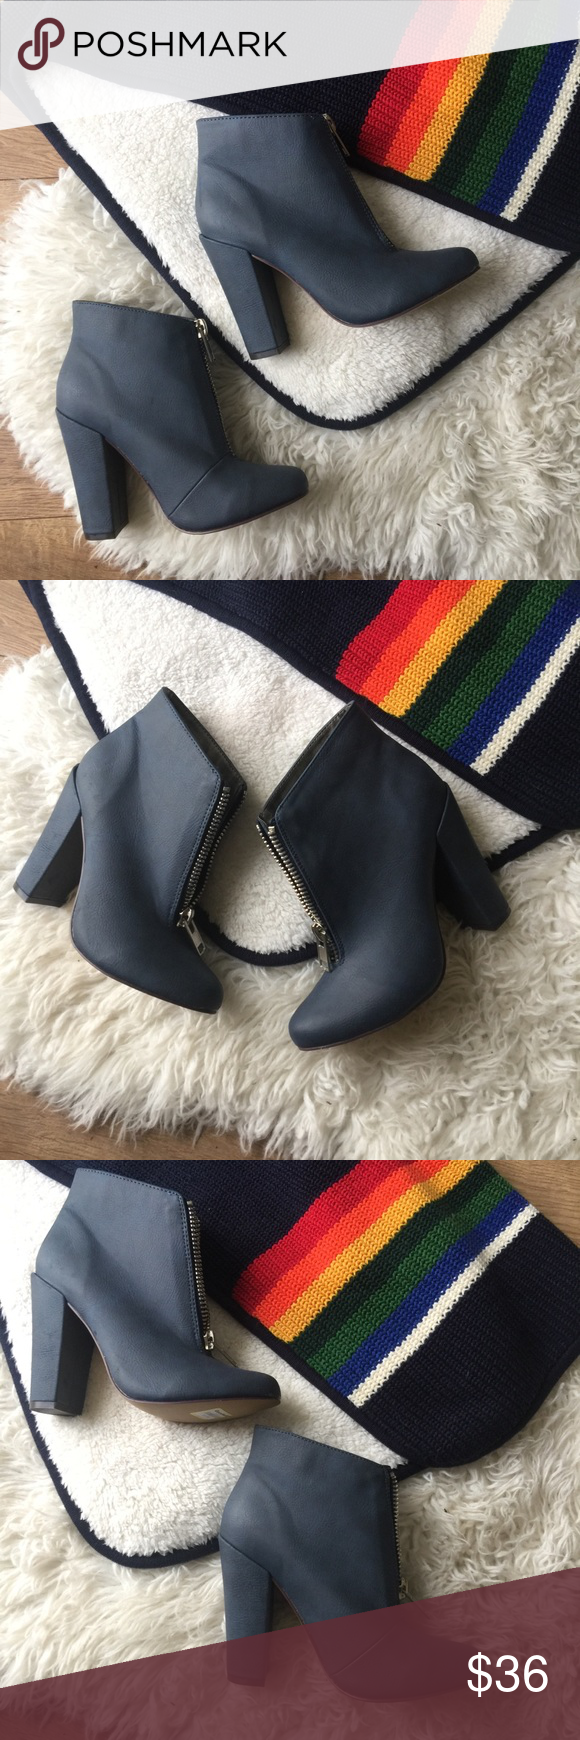 Zipper Booties ???????????? Zipper Booties Ankle boots w/ chunky heel Soft Navy Blue Color  Excellent Condition!  NWOT Size 7 Perfect for Fall ???????? Skinny Jeans and Ponchos ☕️???? I'm open to questions and offers!  Michael Antonio Michael Antonio Shoes Ankle Boots & Booties #skinnyjeansandankleboots